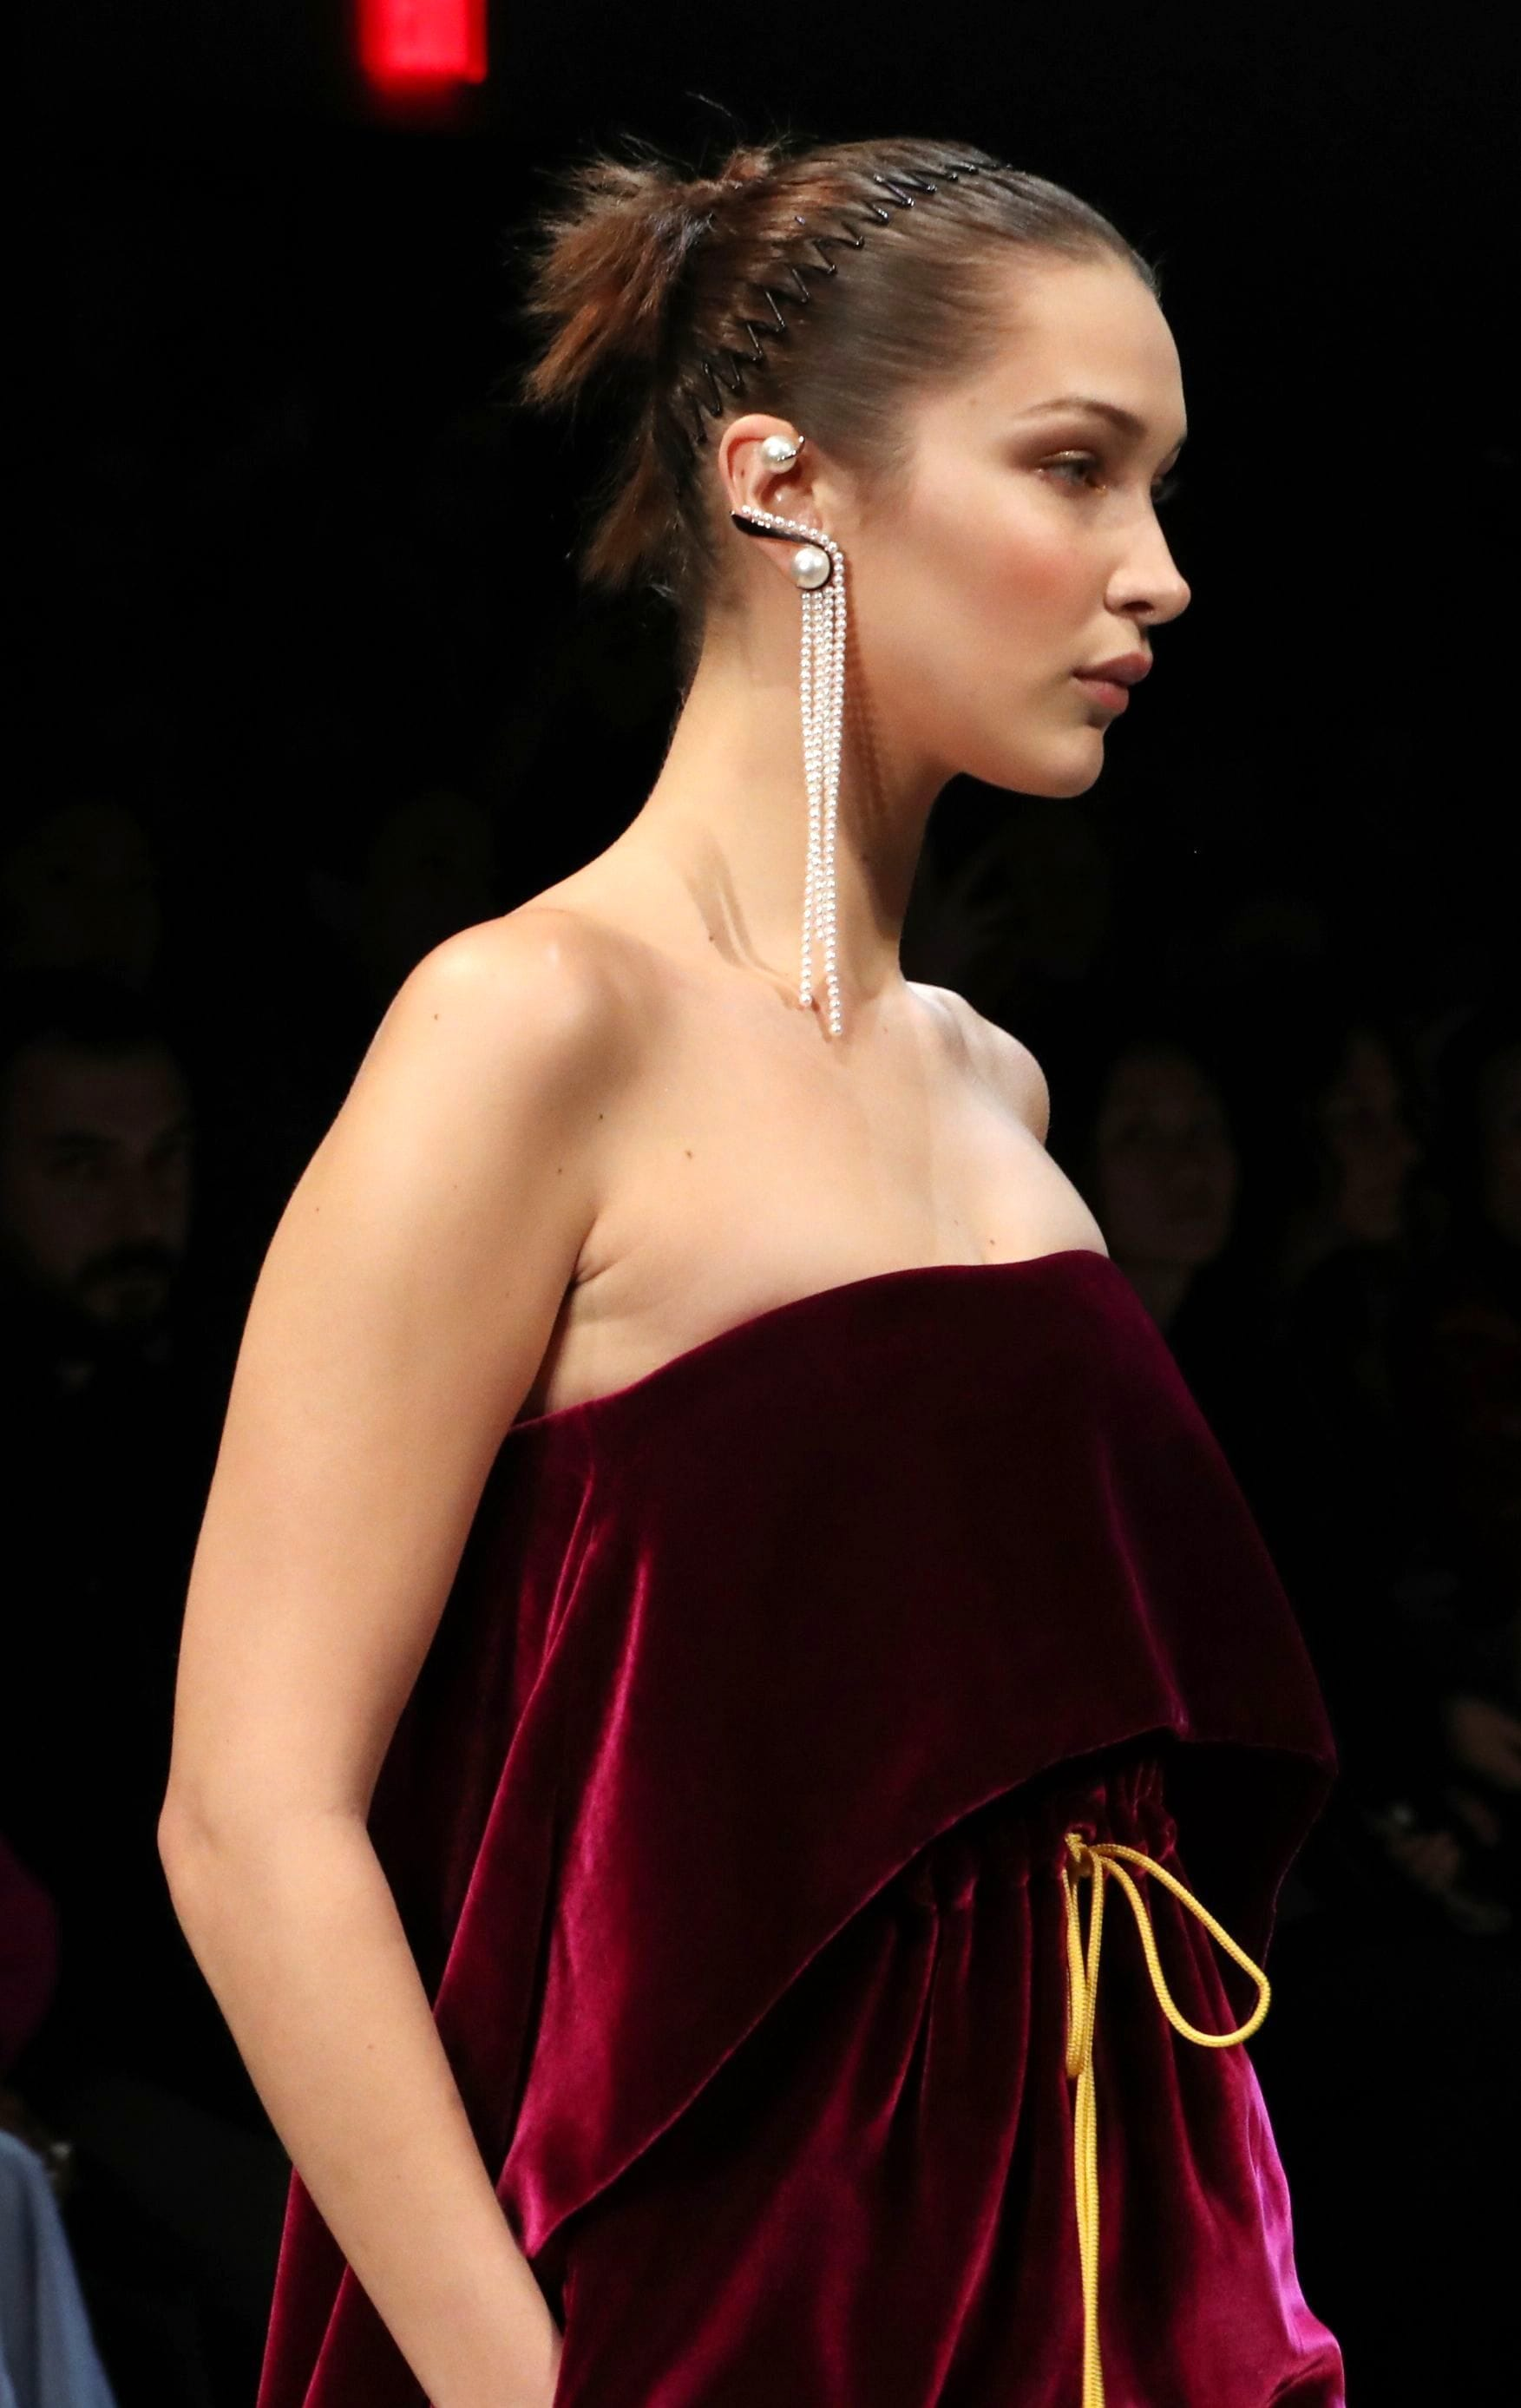 bella hadid brown hair in updo with '90s accordion headband on catwalk